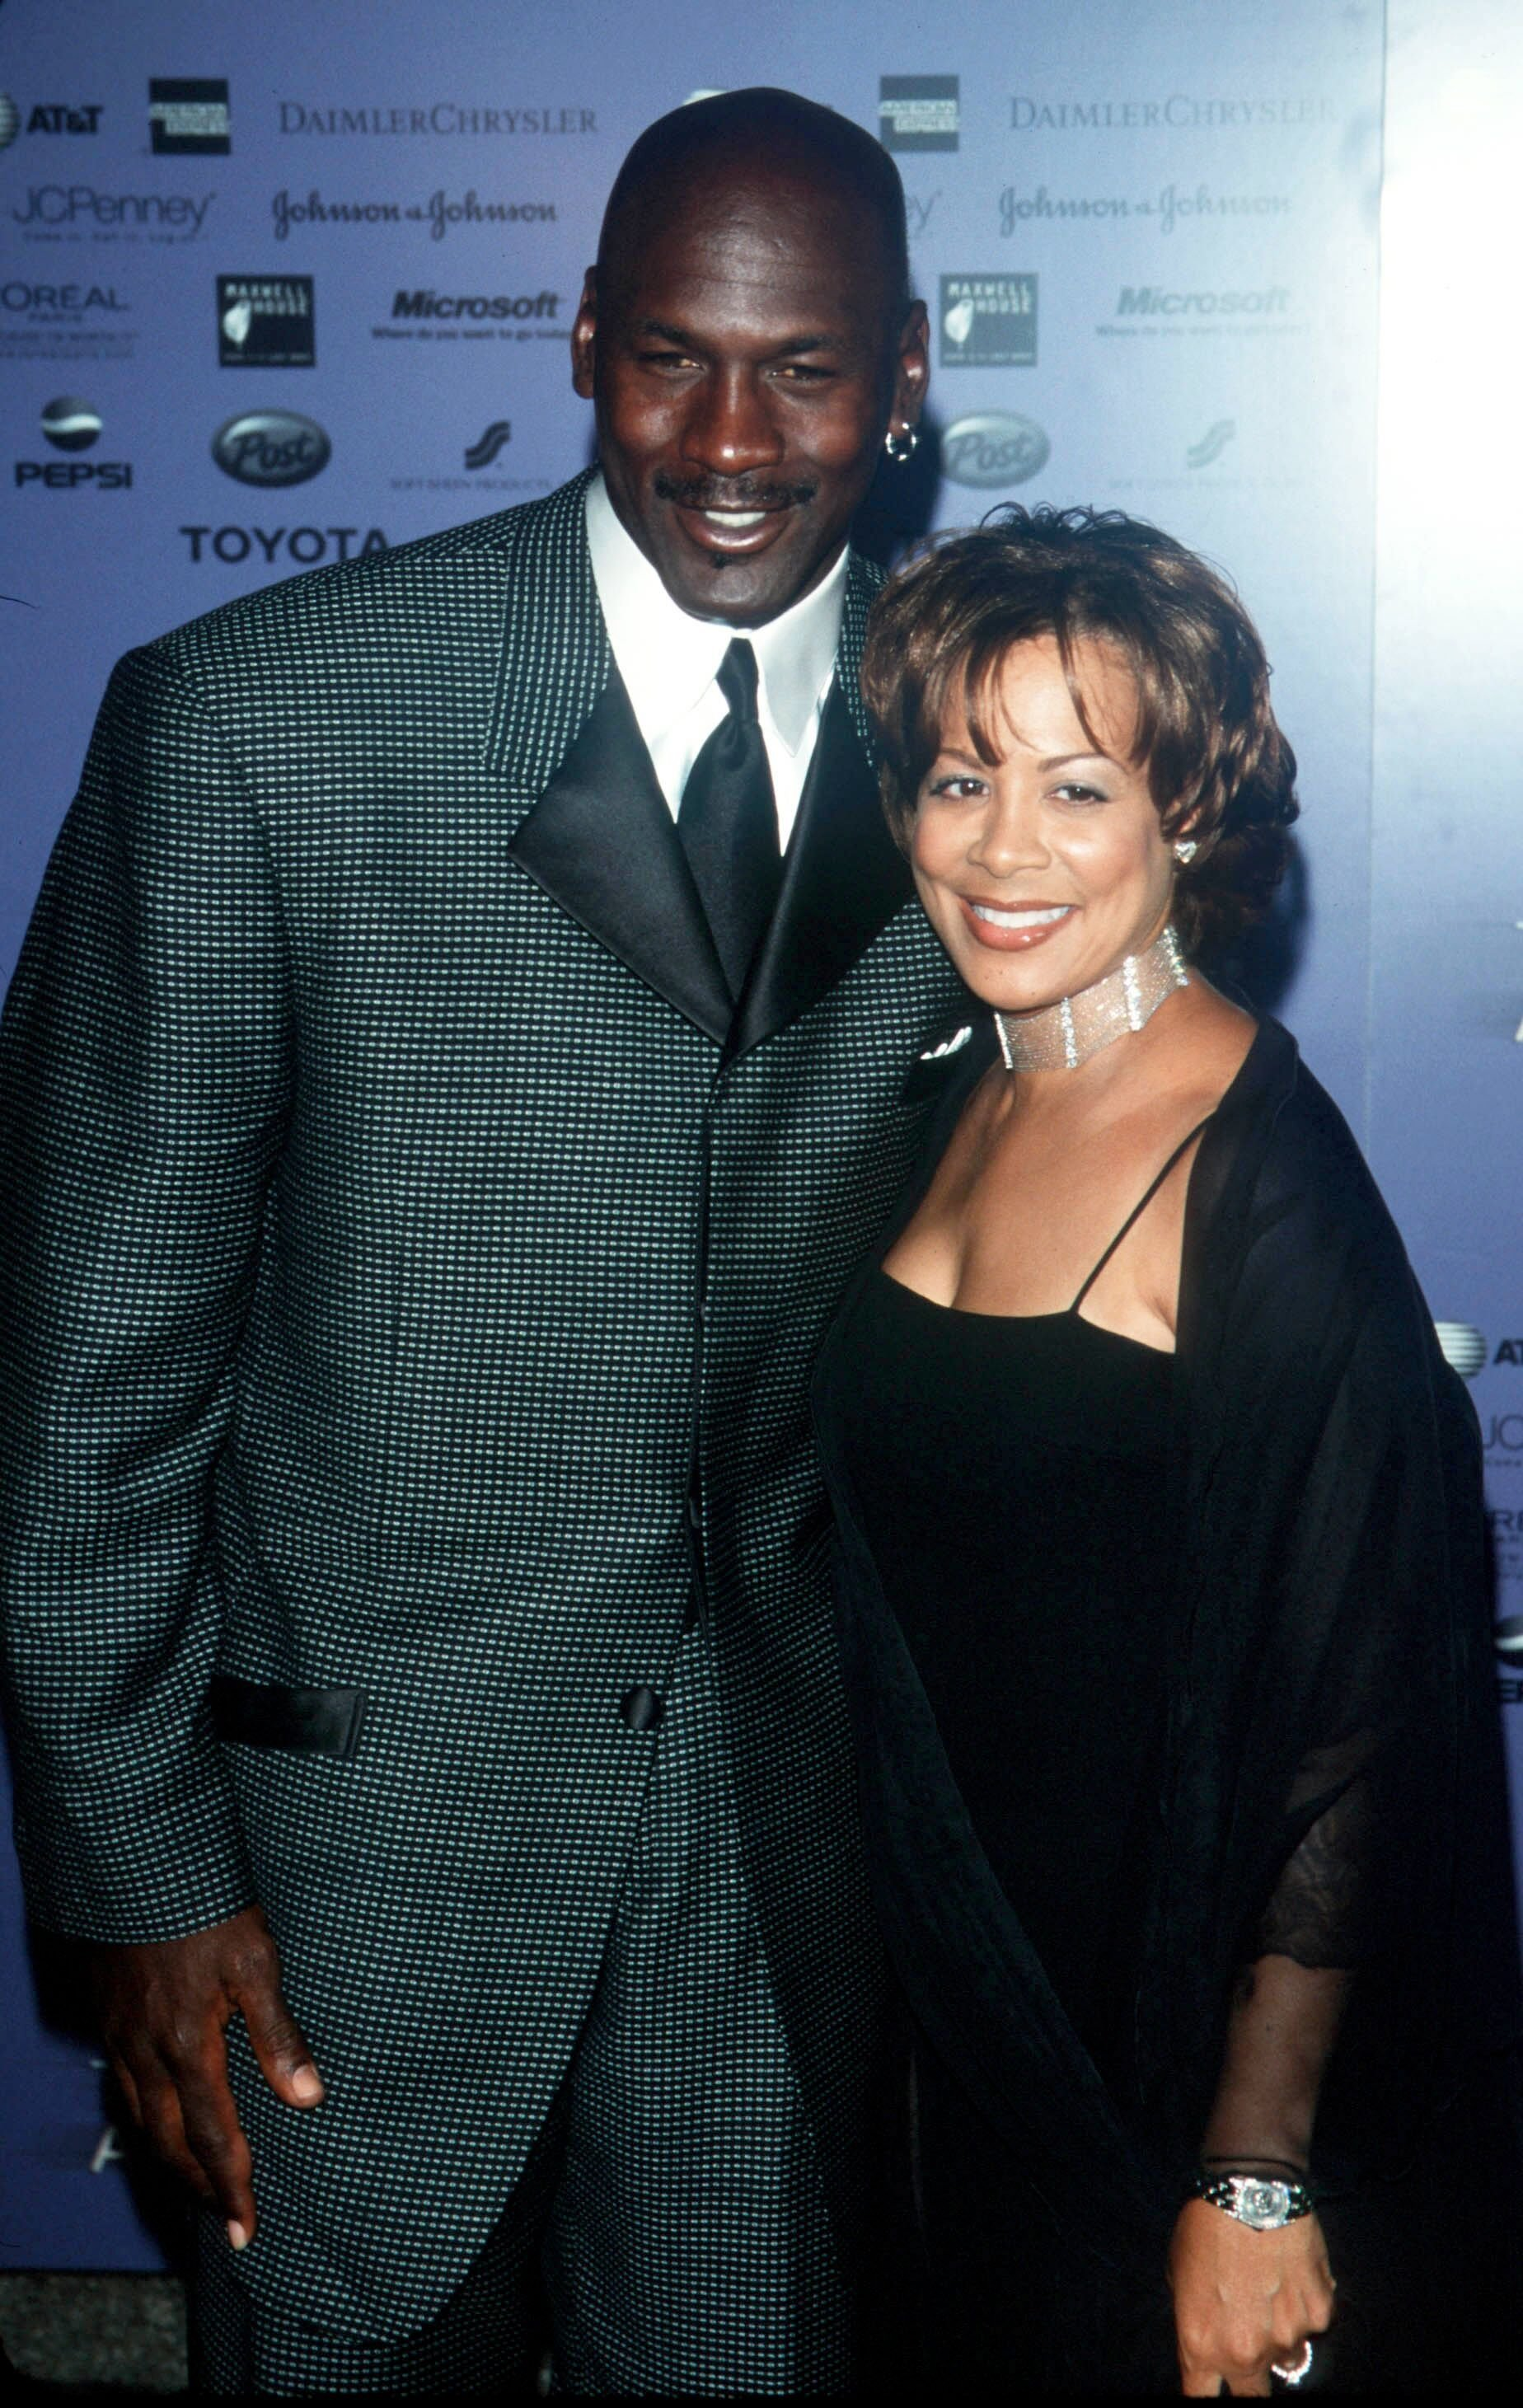 New York City Essence Awards 2000 with Michael Jordan with wife Juanita. | Source: Getty Images